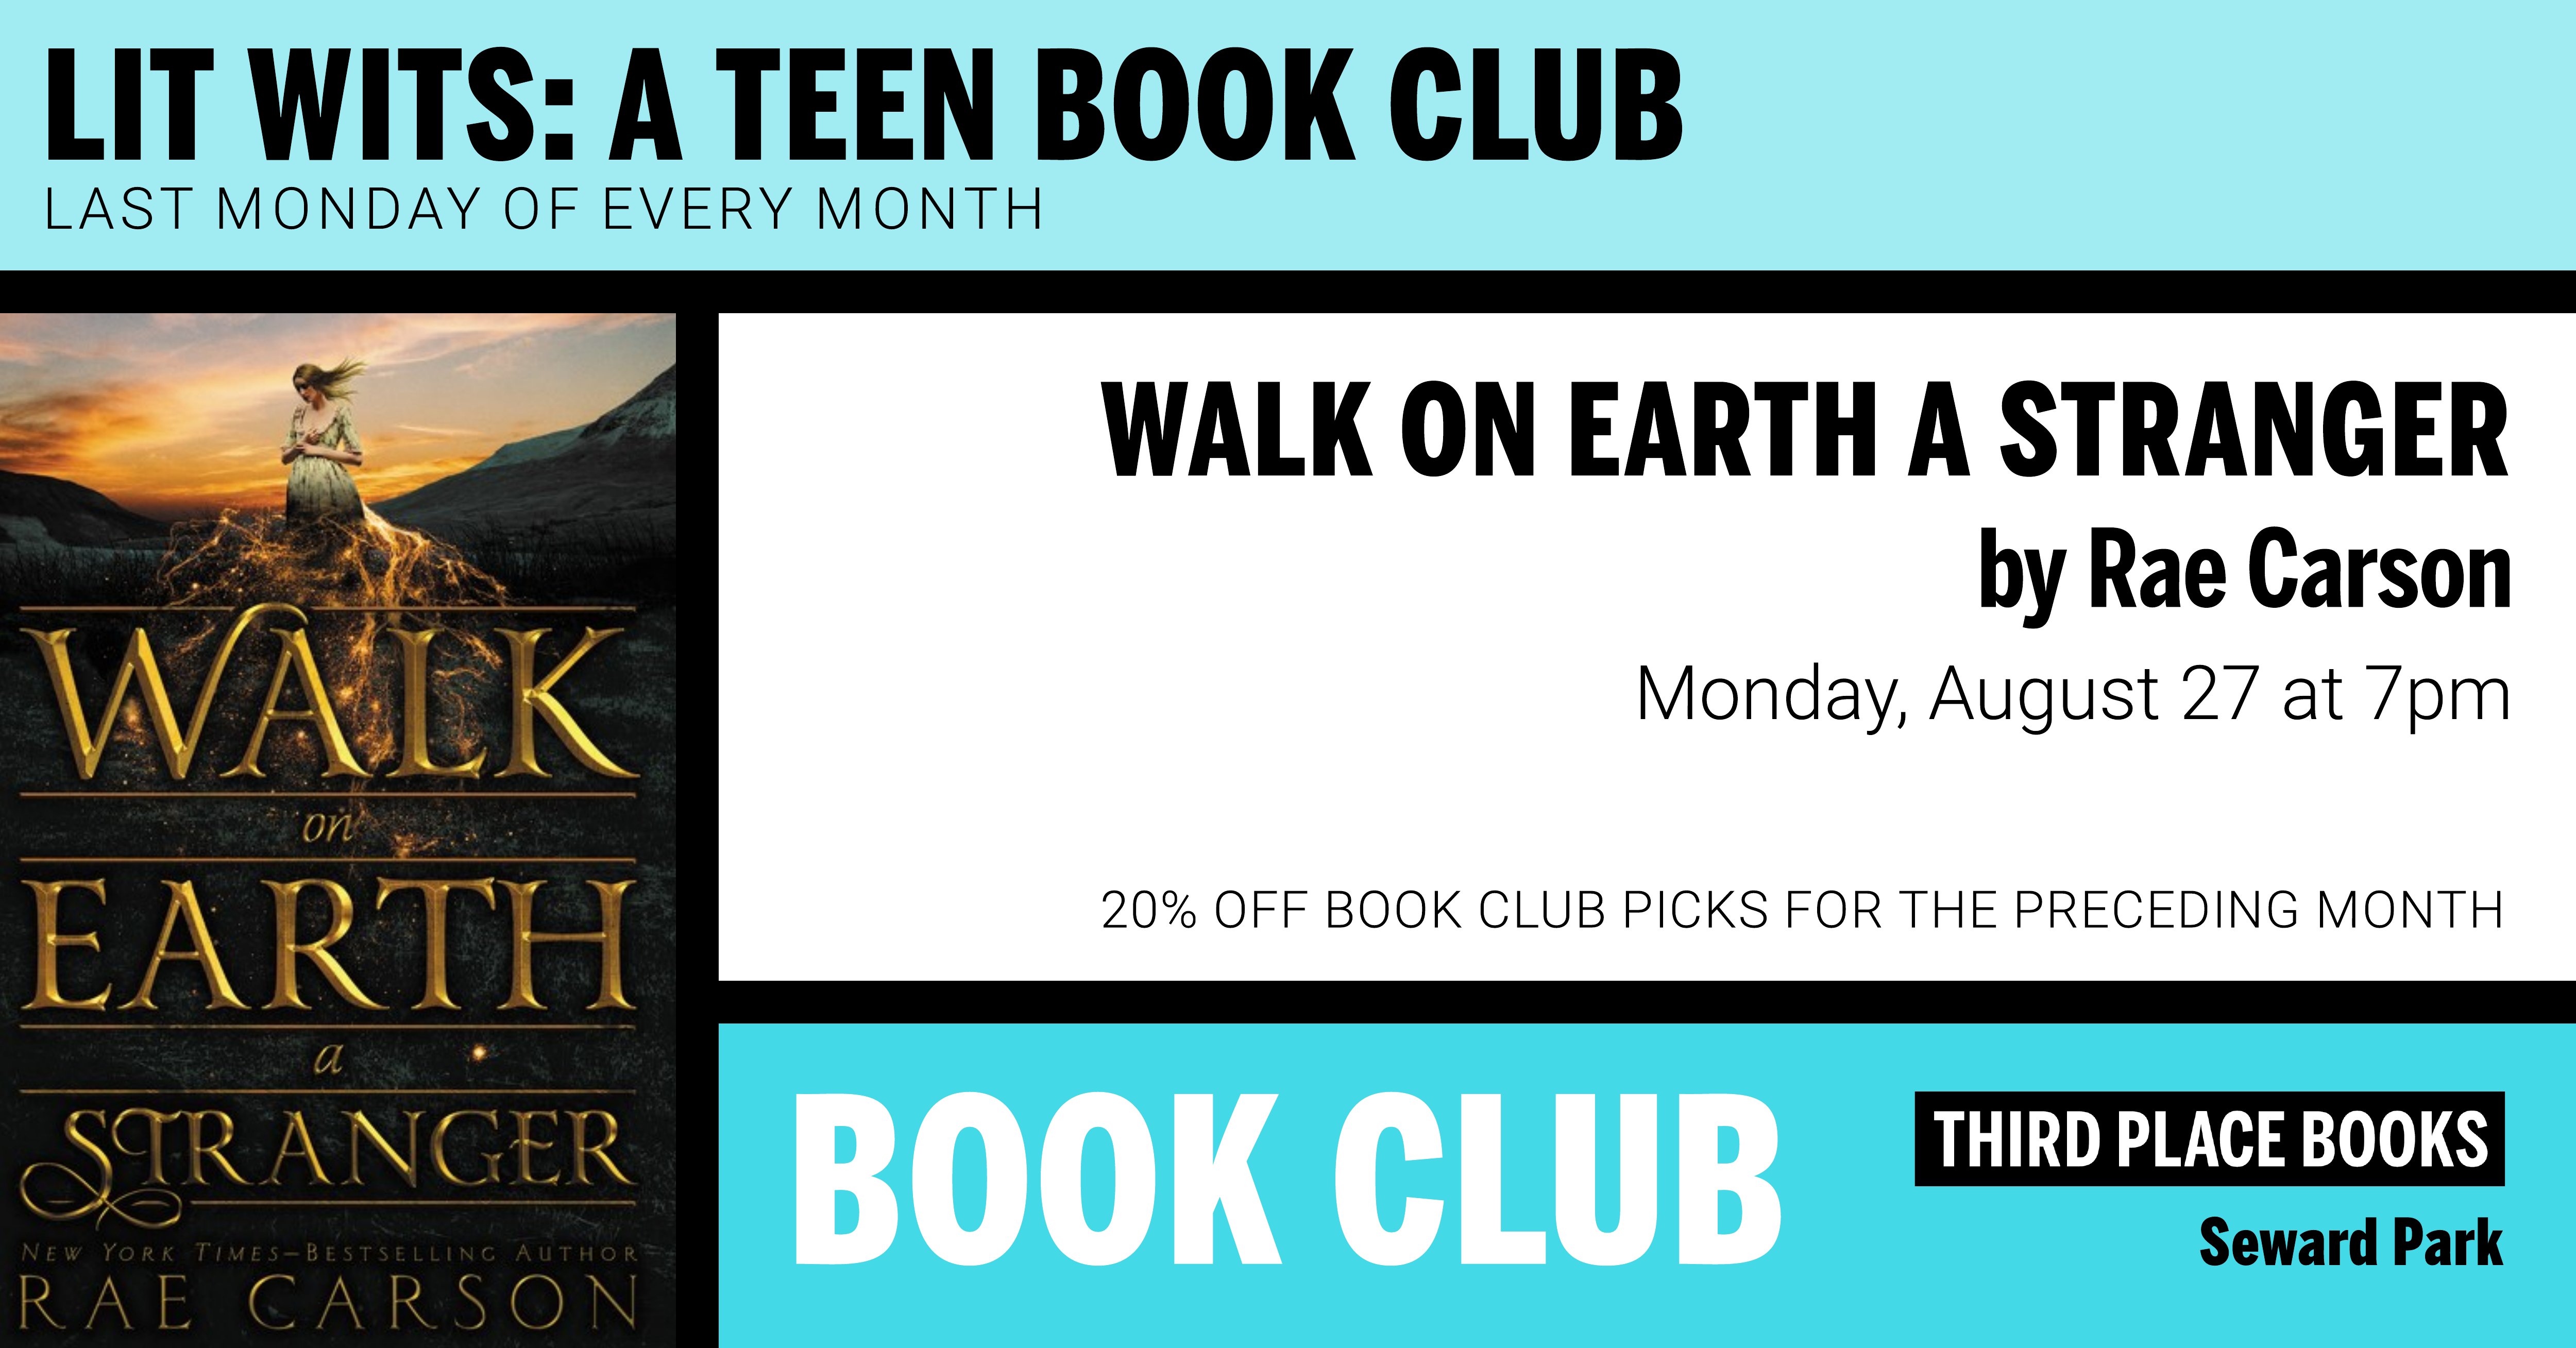 Lit Wits: A Teen Book Club reading Walk on Earth a Stranger by Rae Carson on Monday, August 27 at 7pm